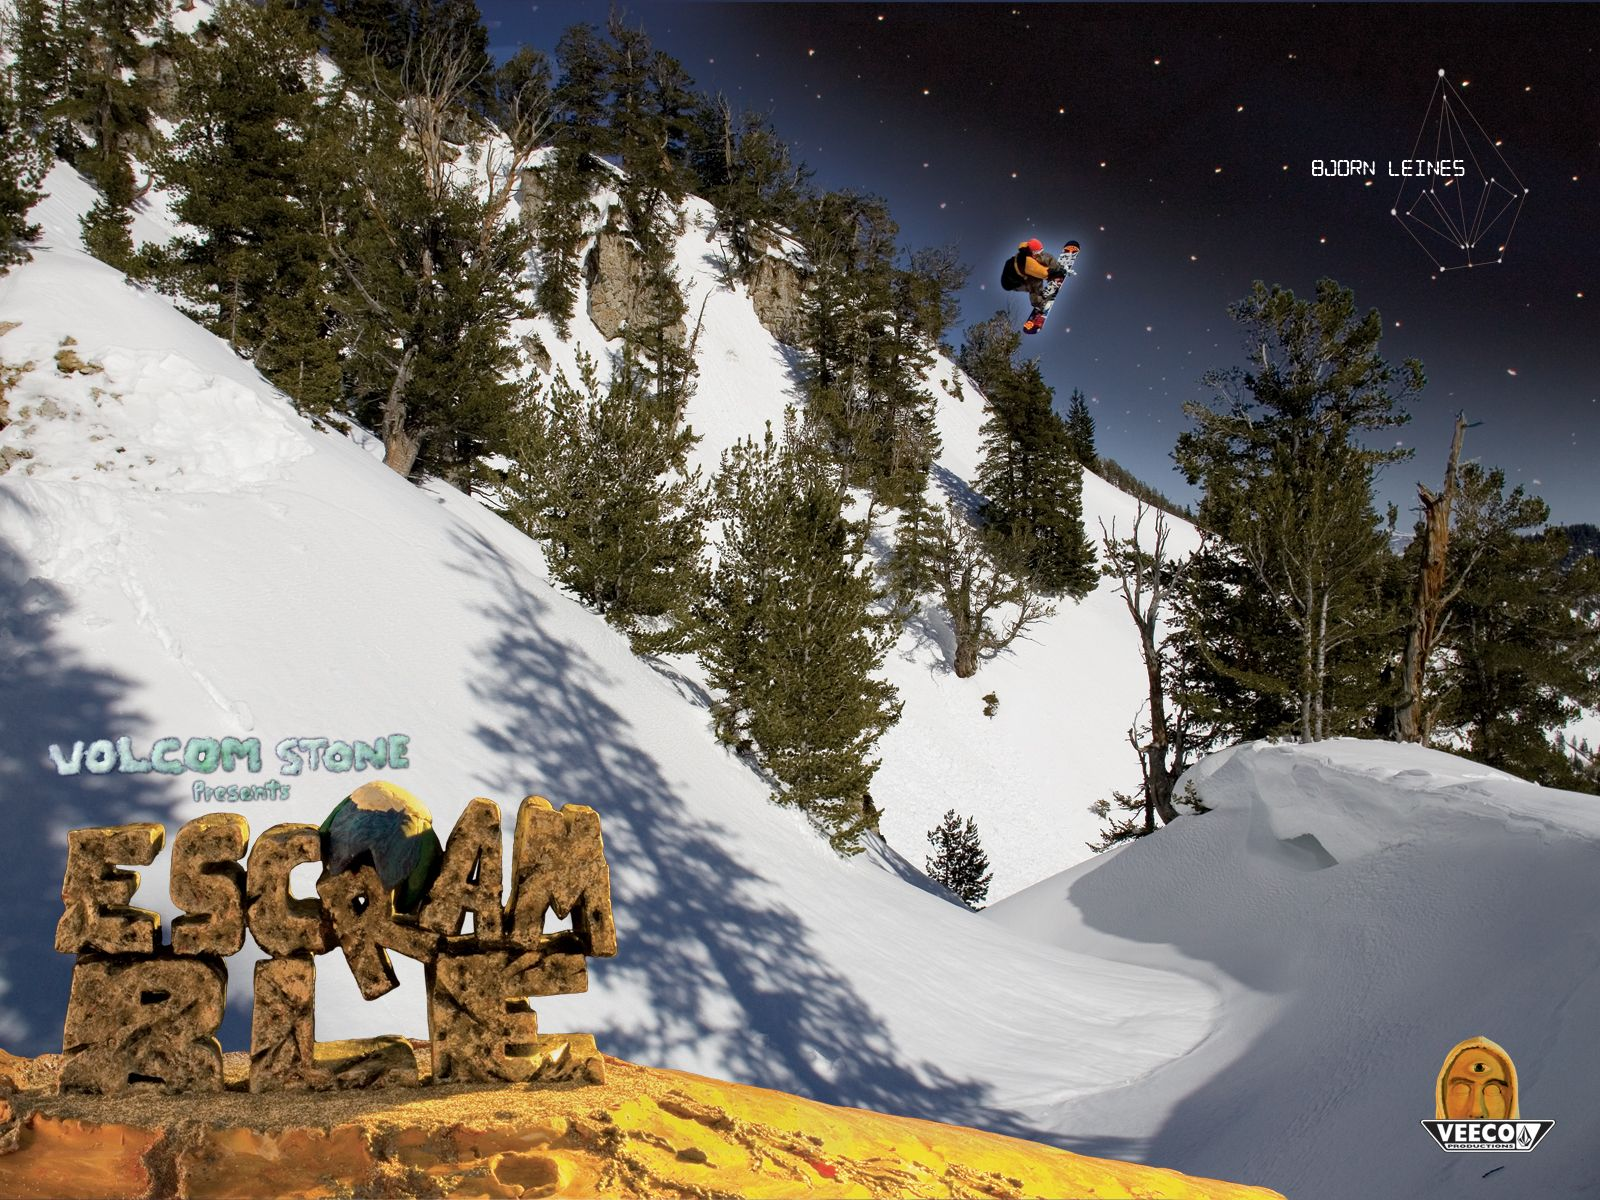 snowboarding_wallpaper_004